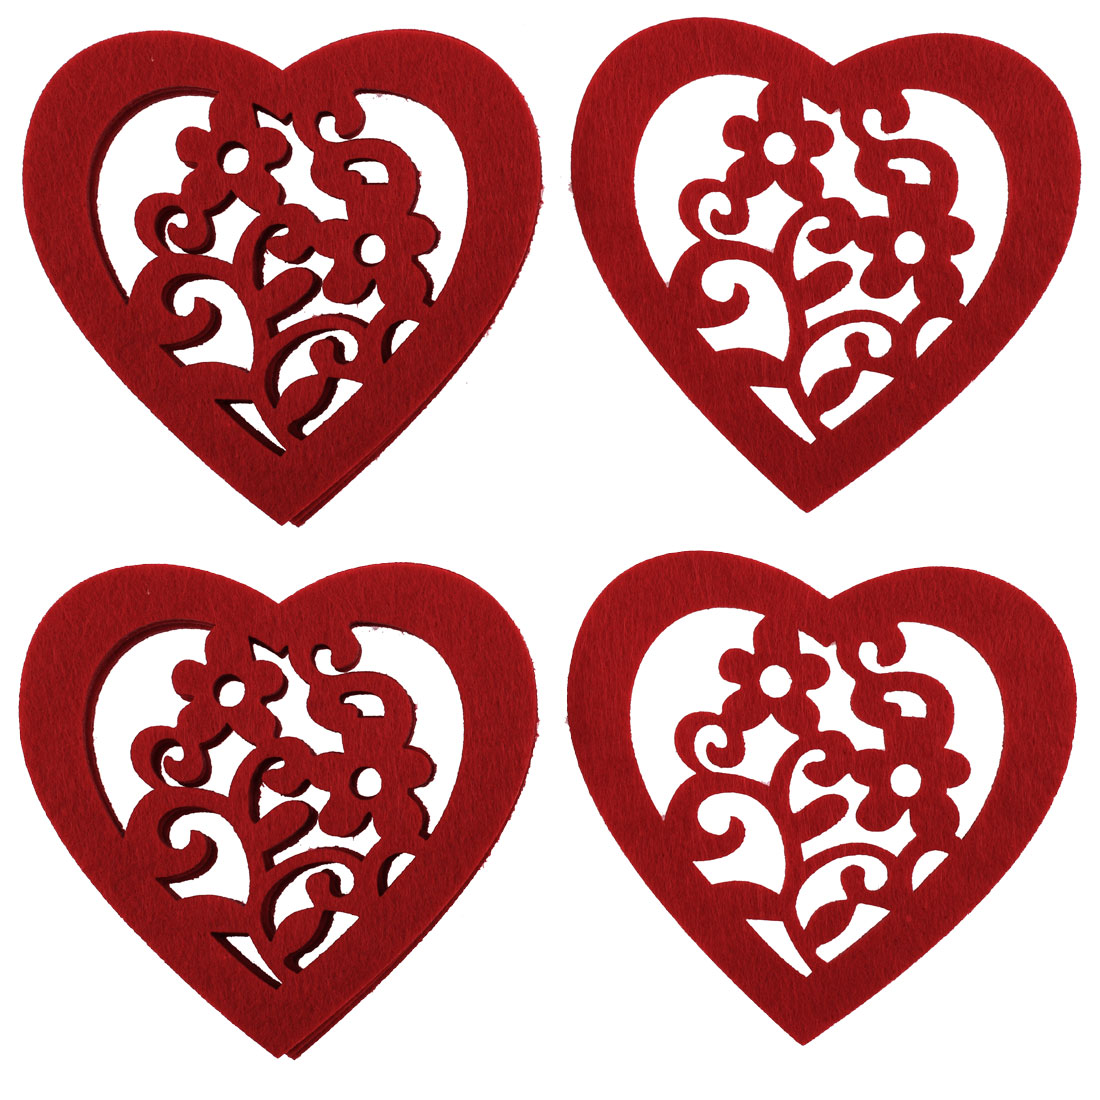 Home Office Felt Heart Shape Cup Heat Insulation Resistant Mat Pad Coasters 4pcs